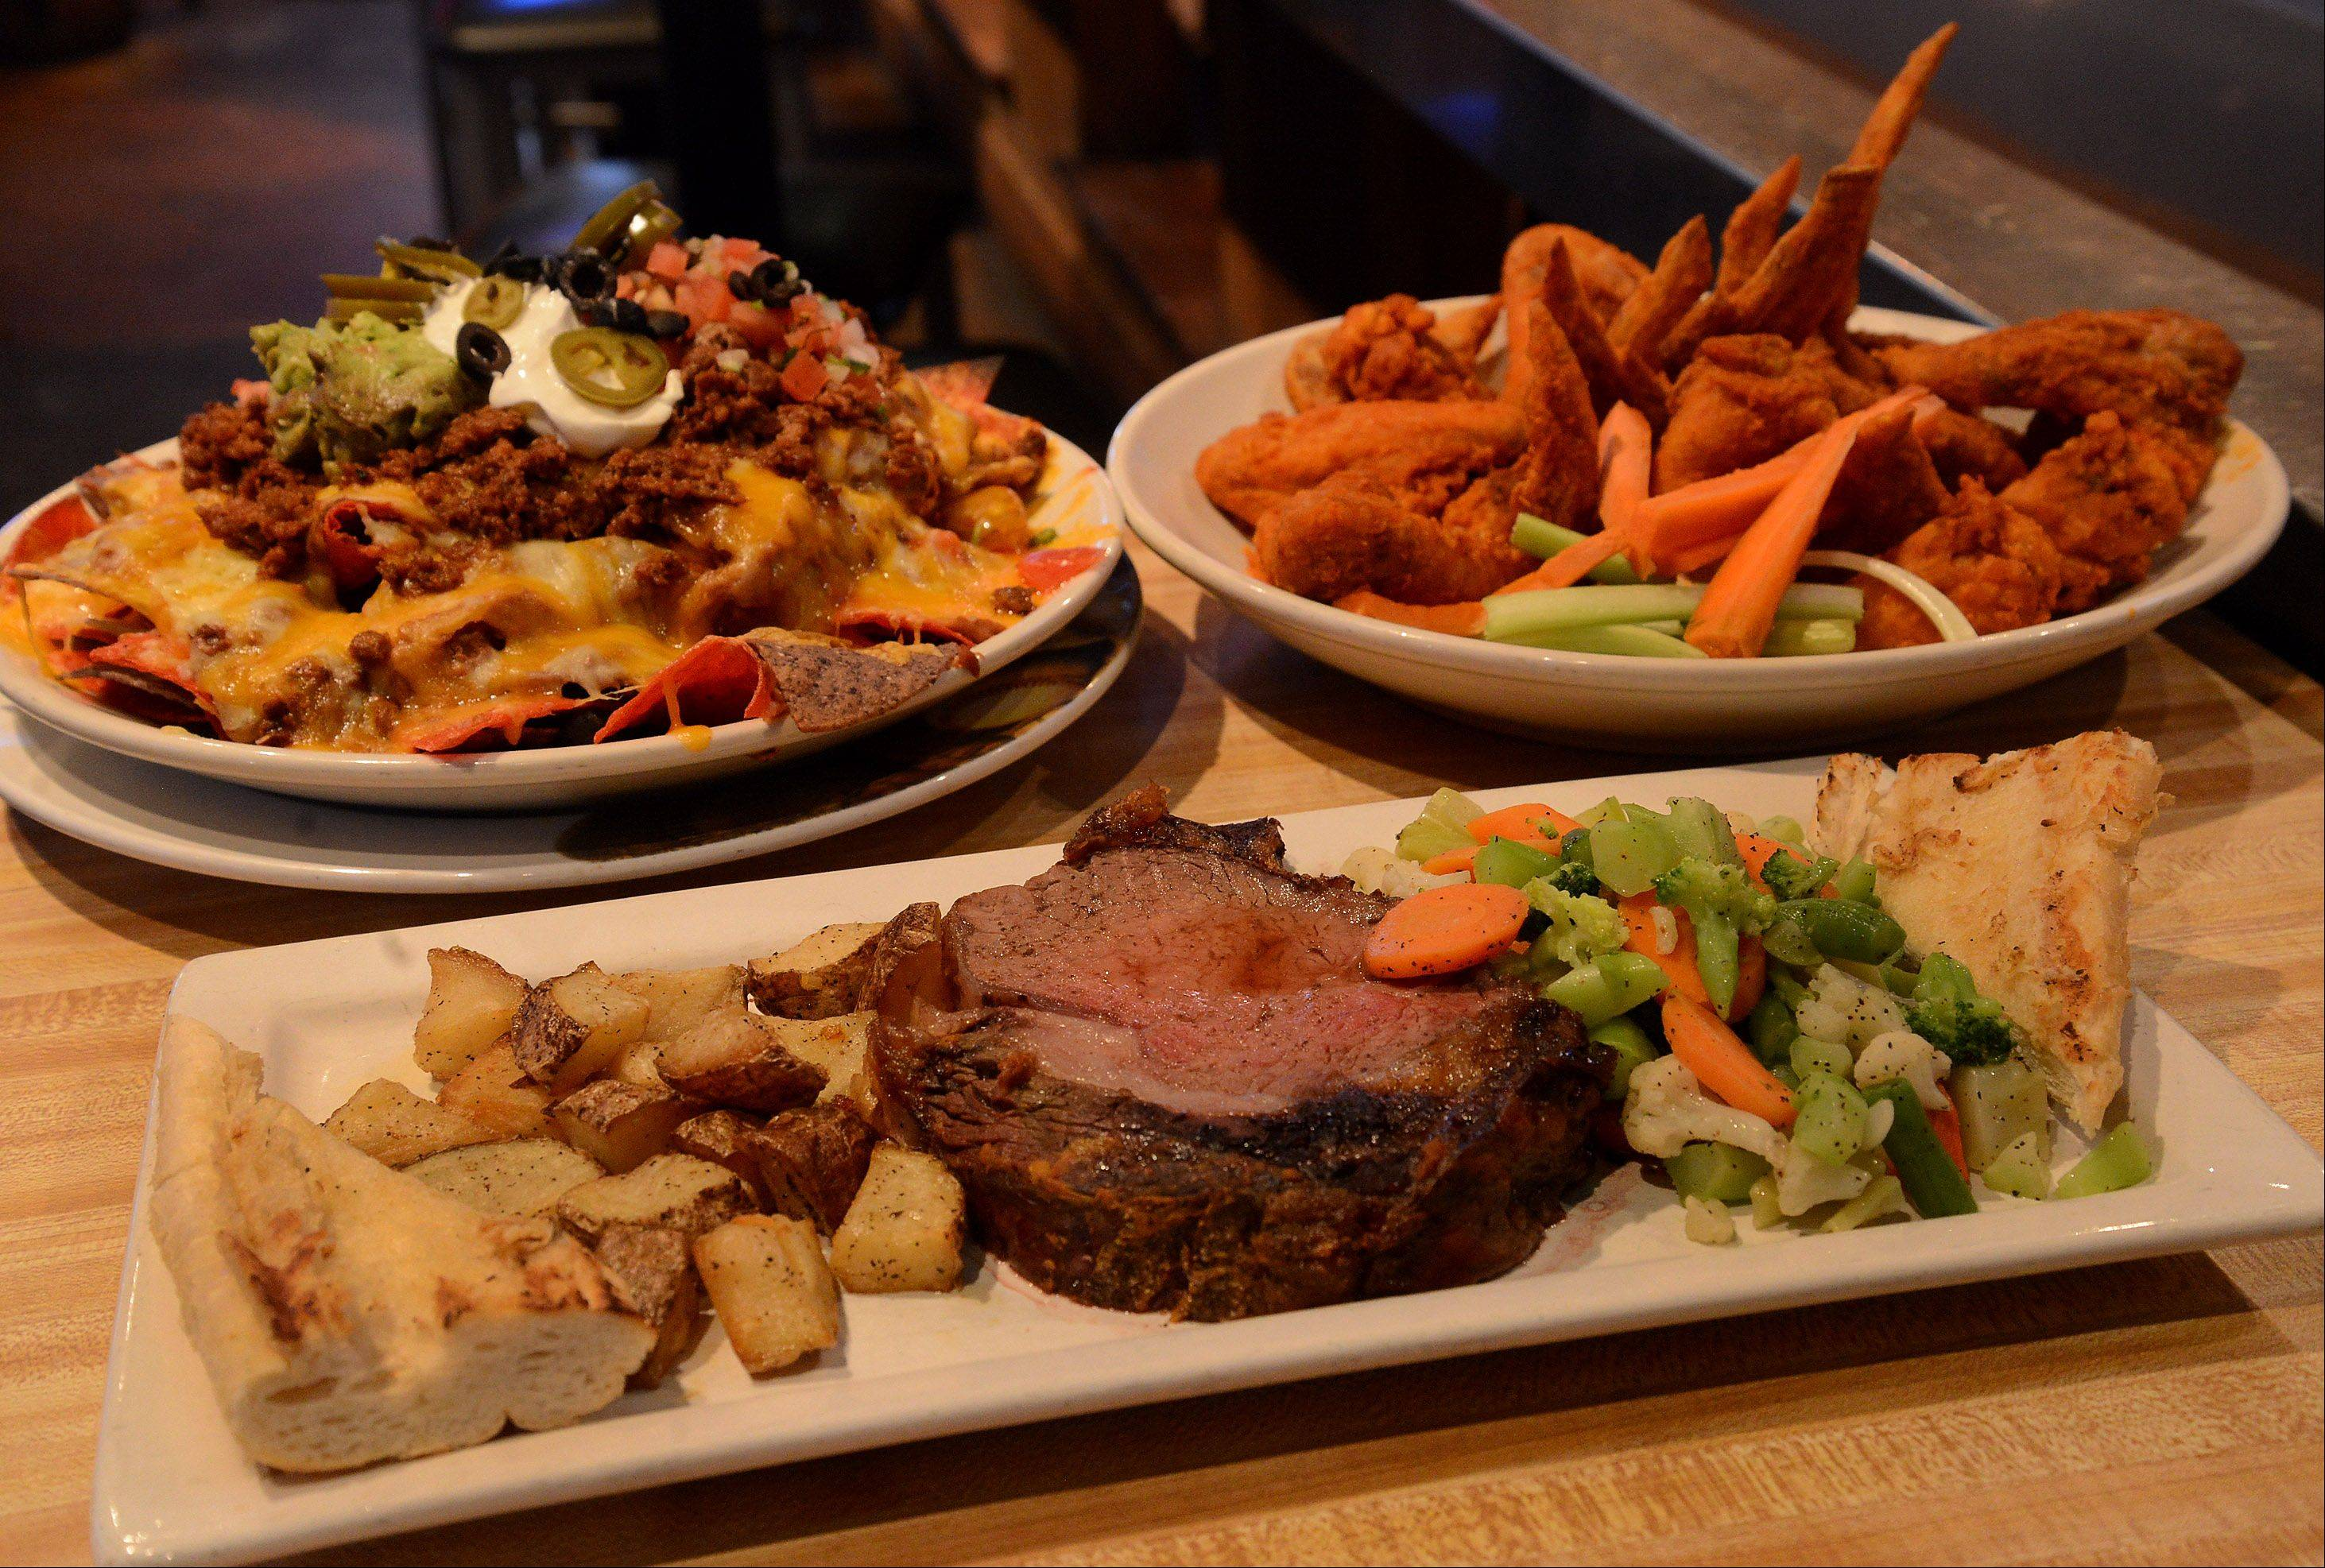 Watch the Super Bowl with Ultimate Nachos, Sudden Death Wings and 16-ounce prime rib at Real Time Sports in Elk Grove Village.